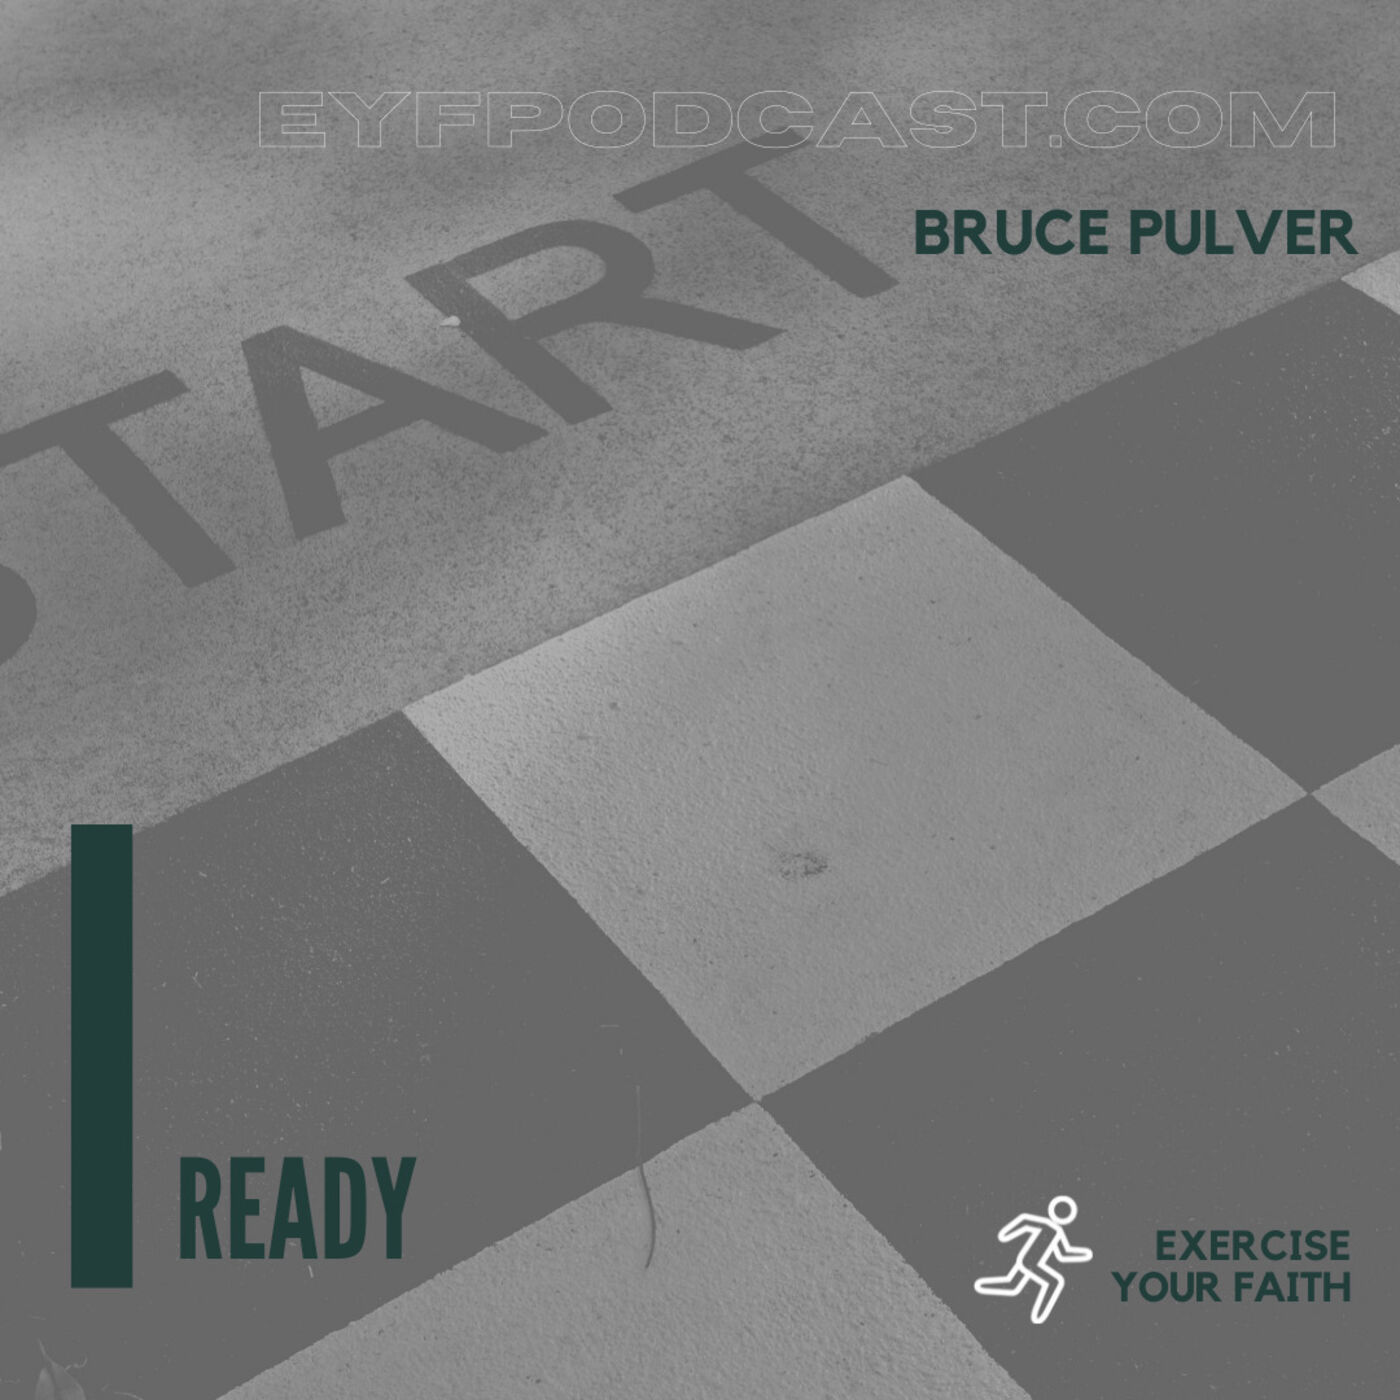 EYFPodcast- Exercise Your Faith by getting READY with Bruce Pulver